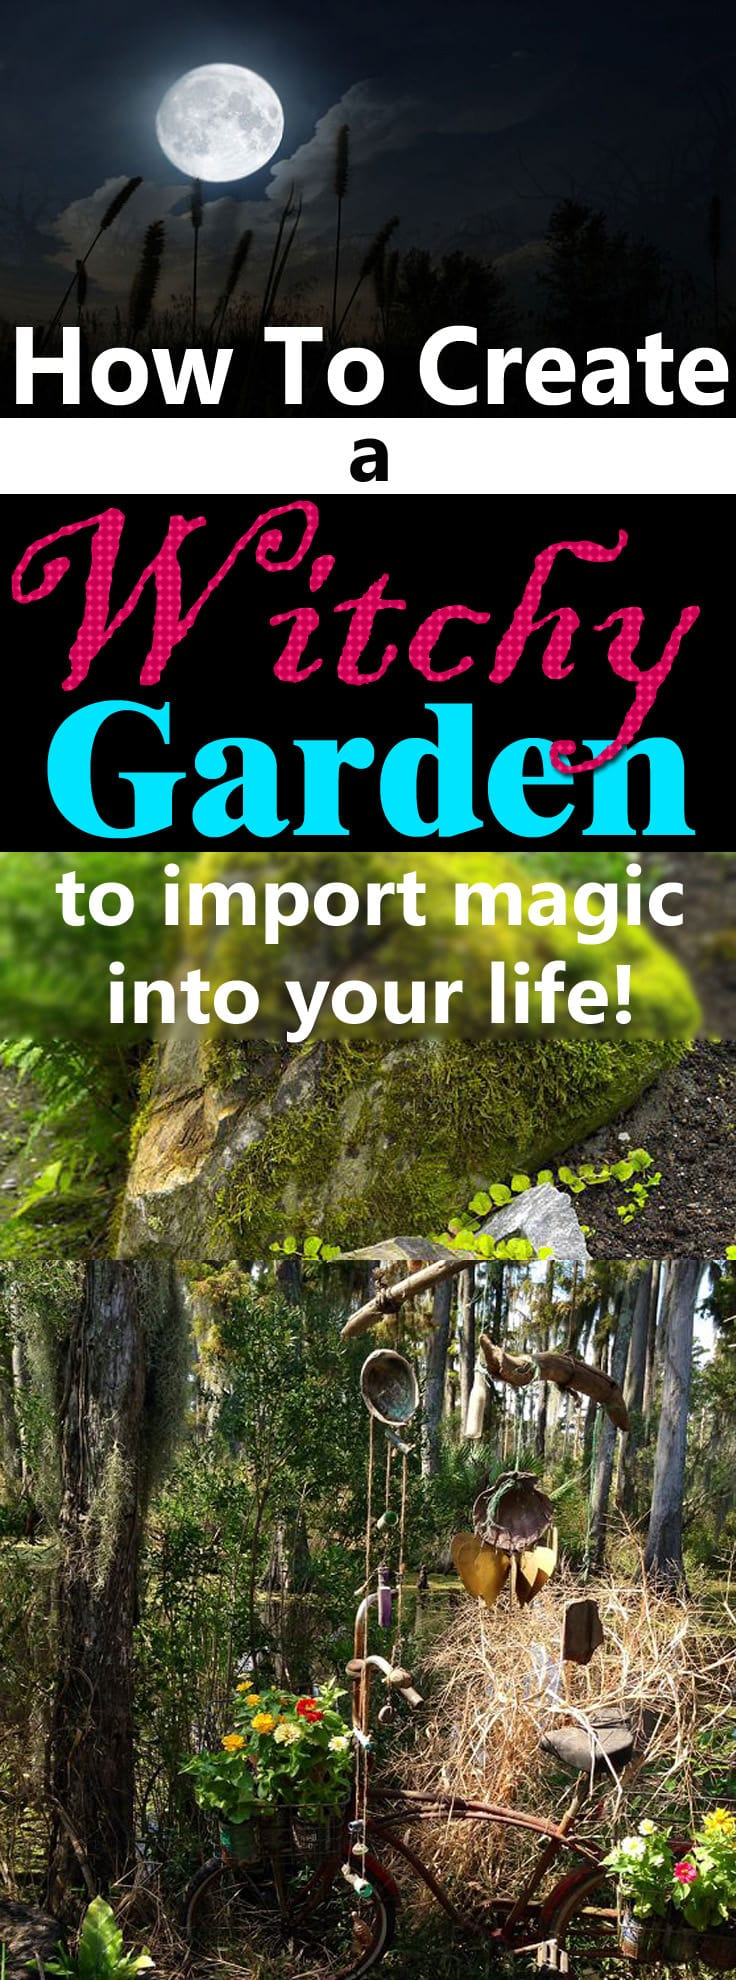 How To Create A Witch's Garden To Import Magic Into Your Life ... Witch Garden Designs Layout on witch gates, witch pumpkin designs, witch weathervane designs, witch drinking wine, witch photography, witch trainer, witch feet, witch hands, witch trees, witch symbols, witch fashion, witch tumblr, witch template, beautiful italian courtyard designs, witch room, witch clothes women, witch tattoo designs, witch nail designs, witch fingers, witch facebook covers,